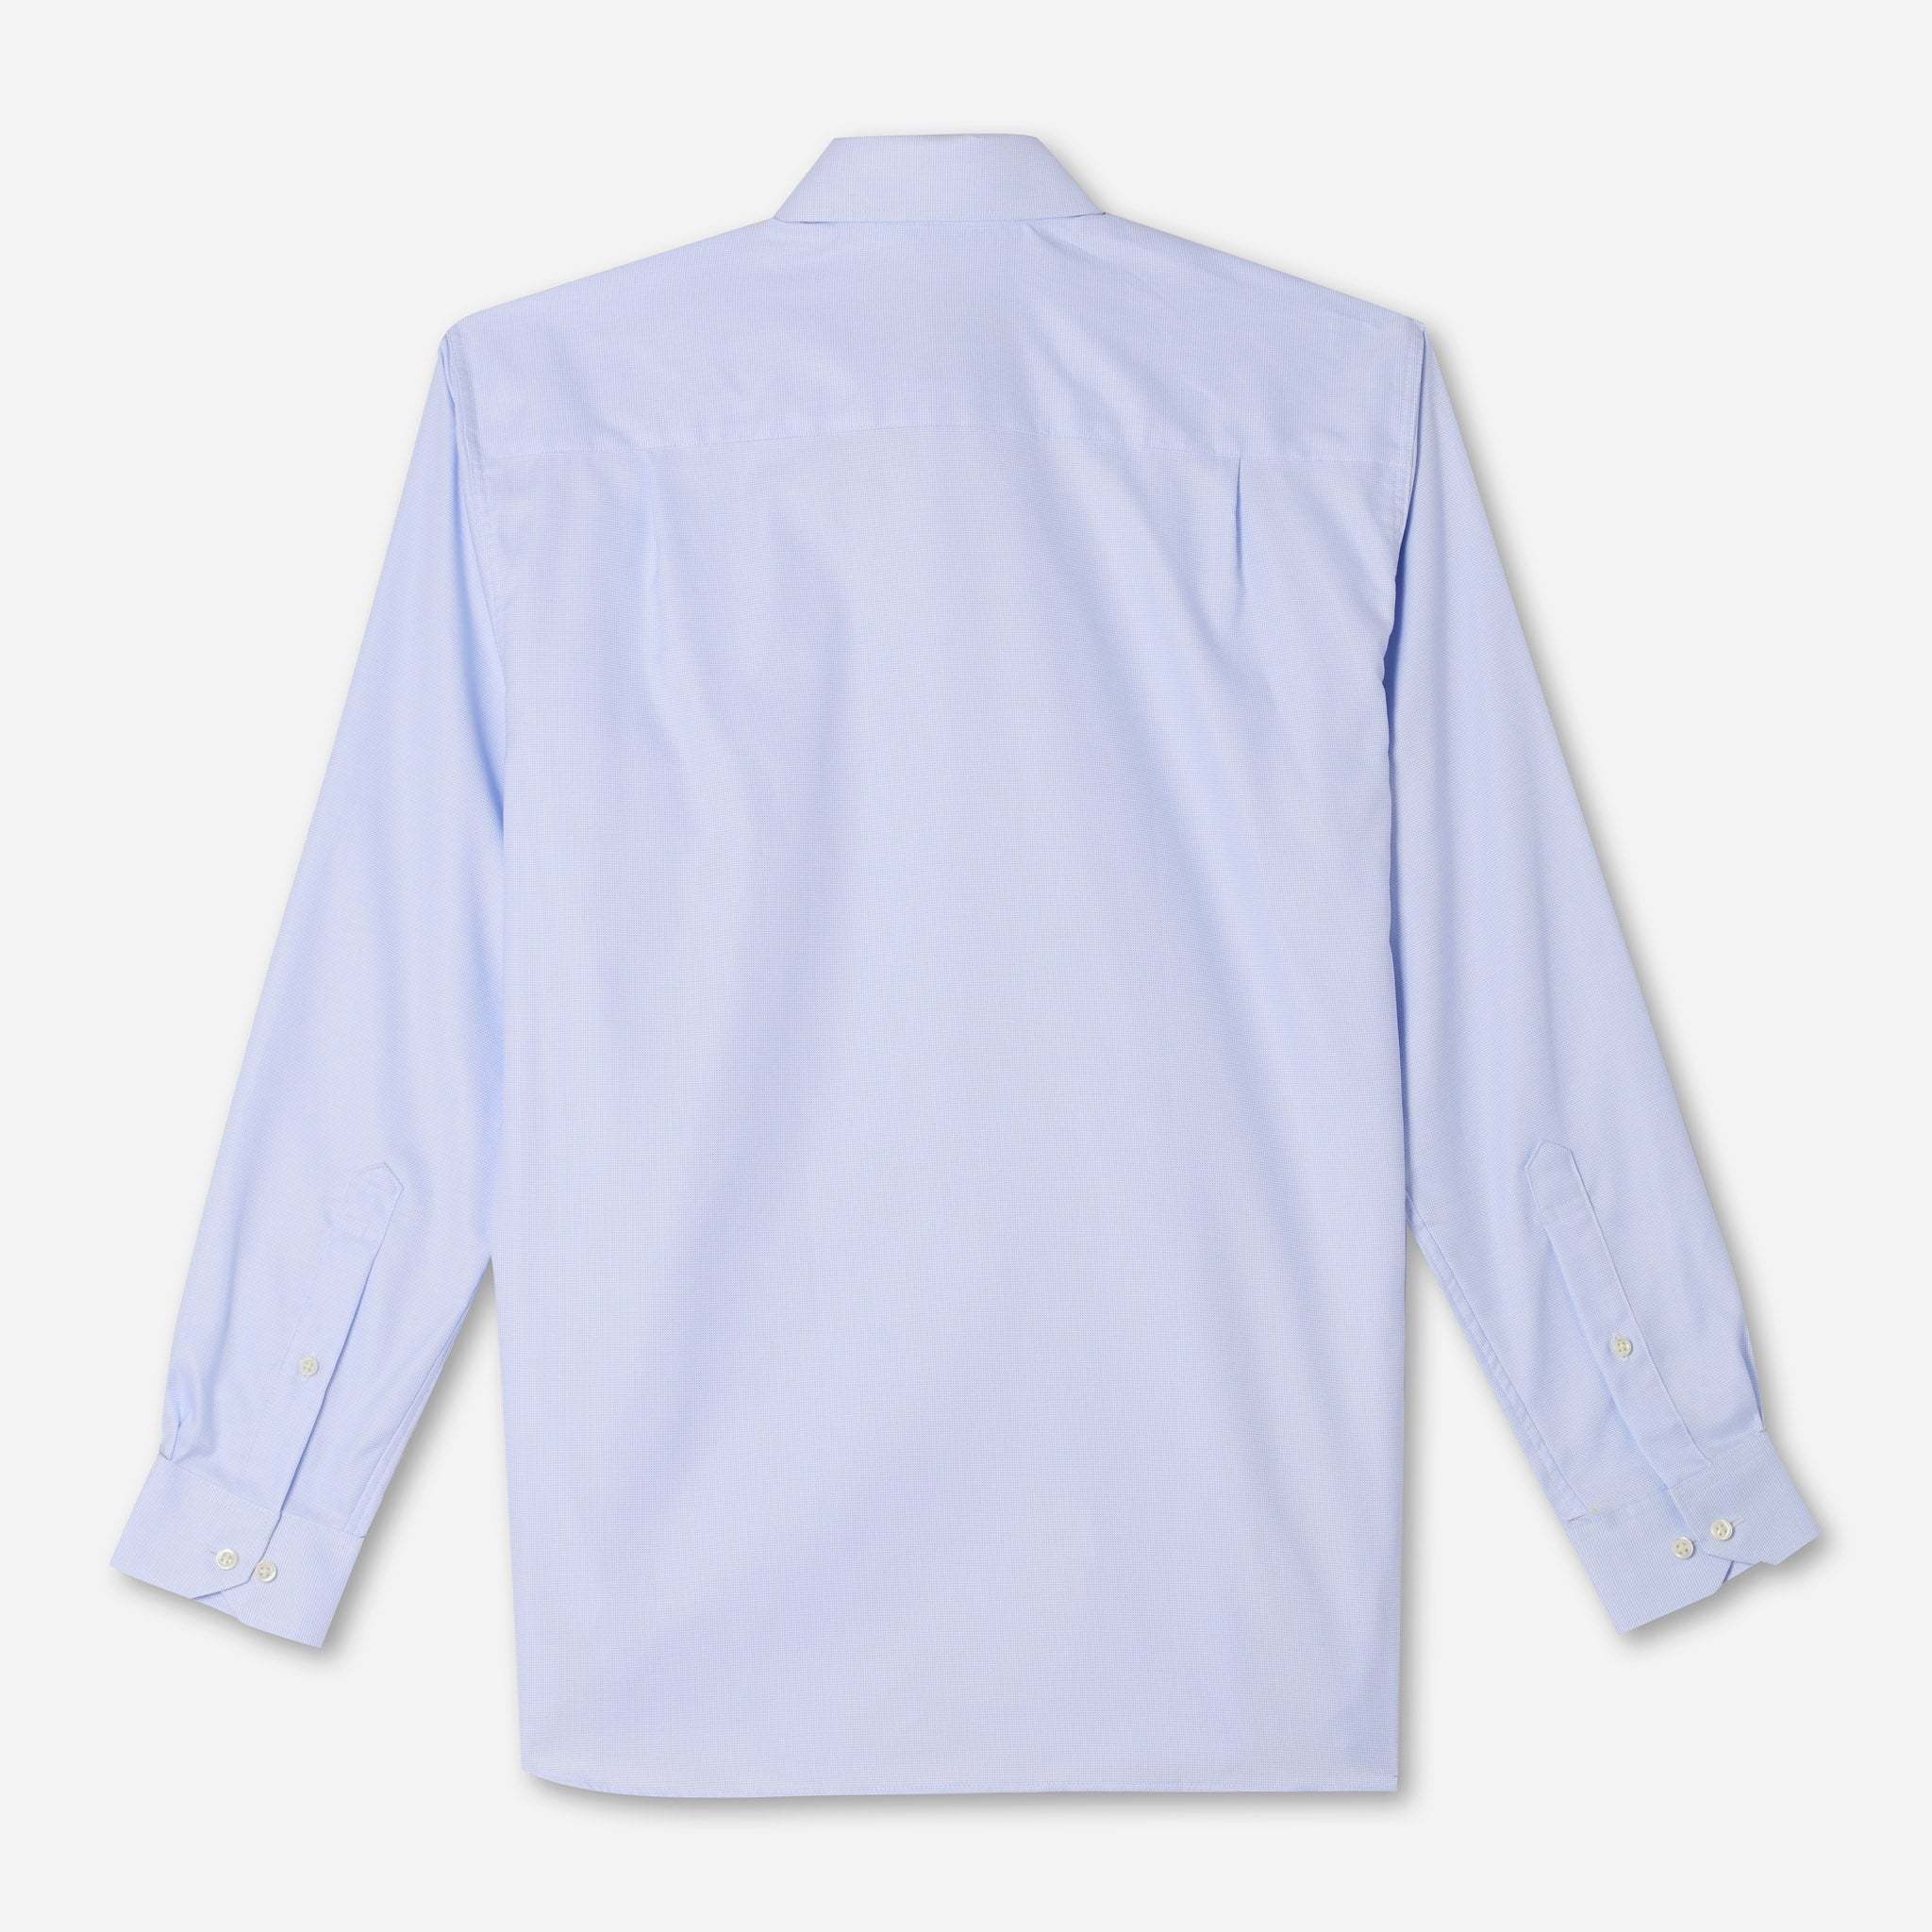 Mason Everyday Premium Shirt in Light Blue Royal Oxford